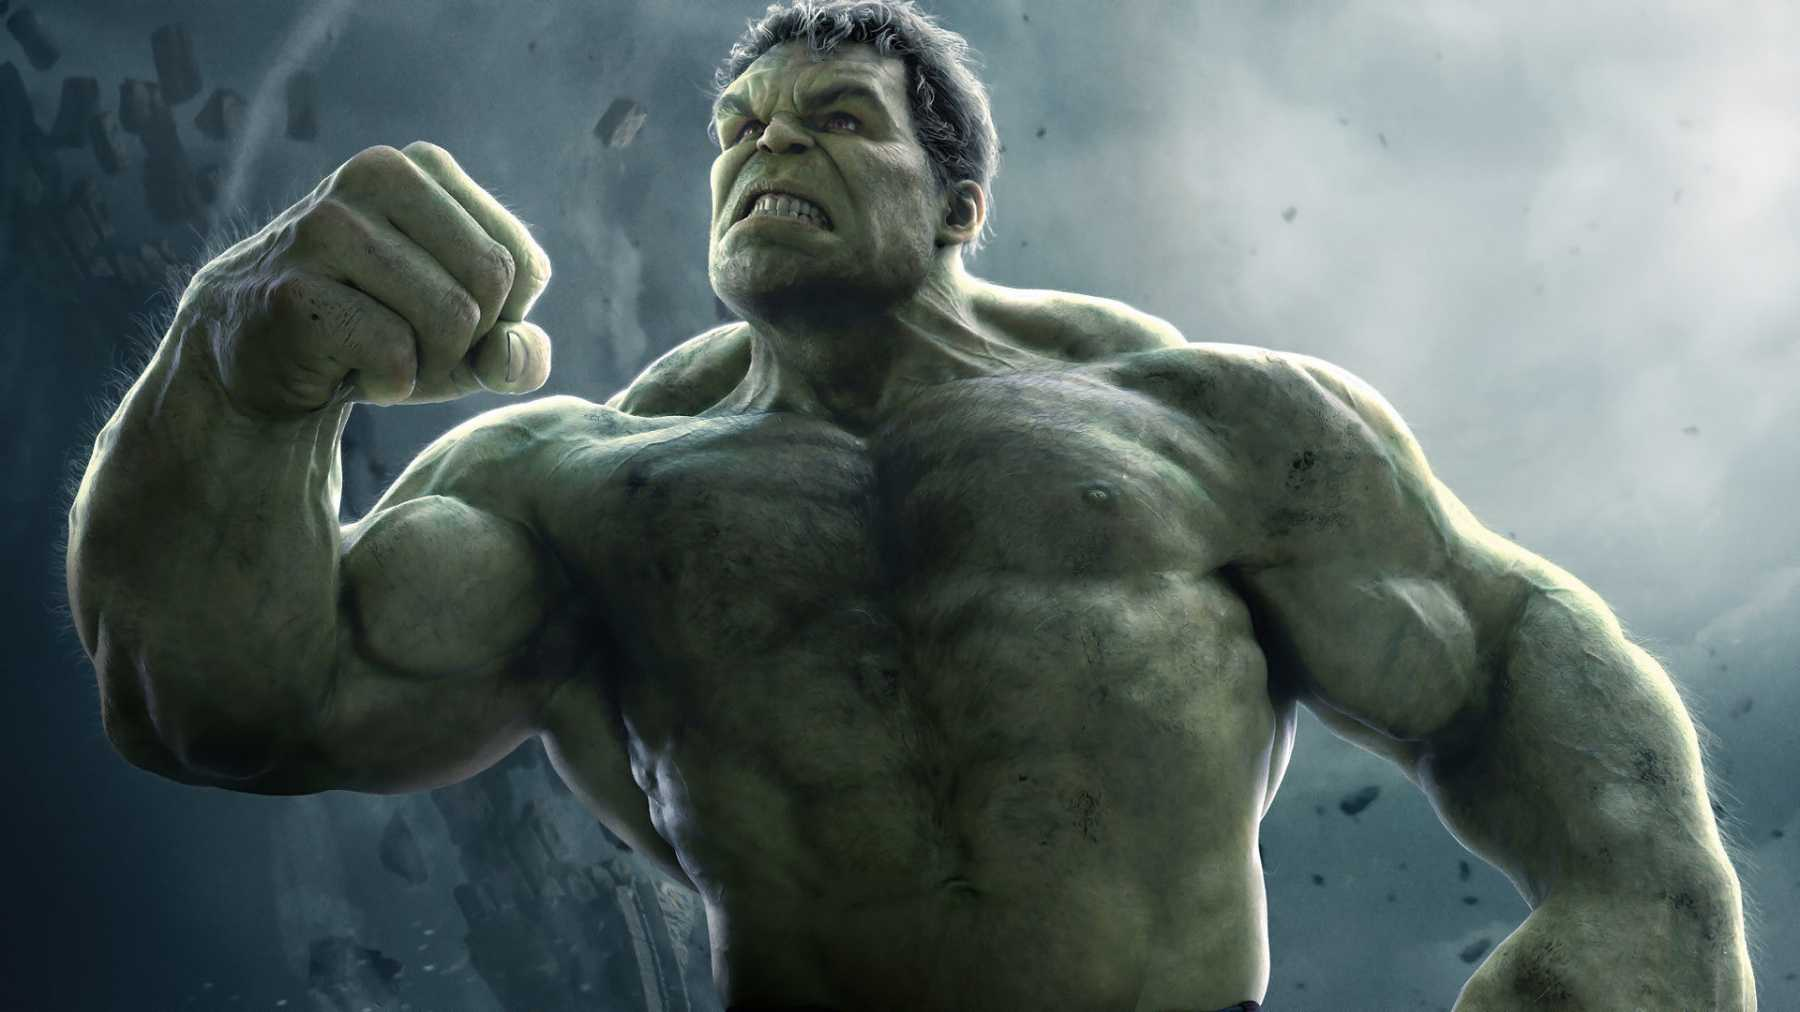 The Hulk Will Not Be Getting His Own Solo Film | The Hulk